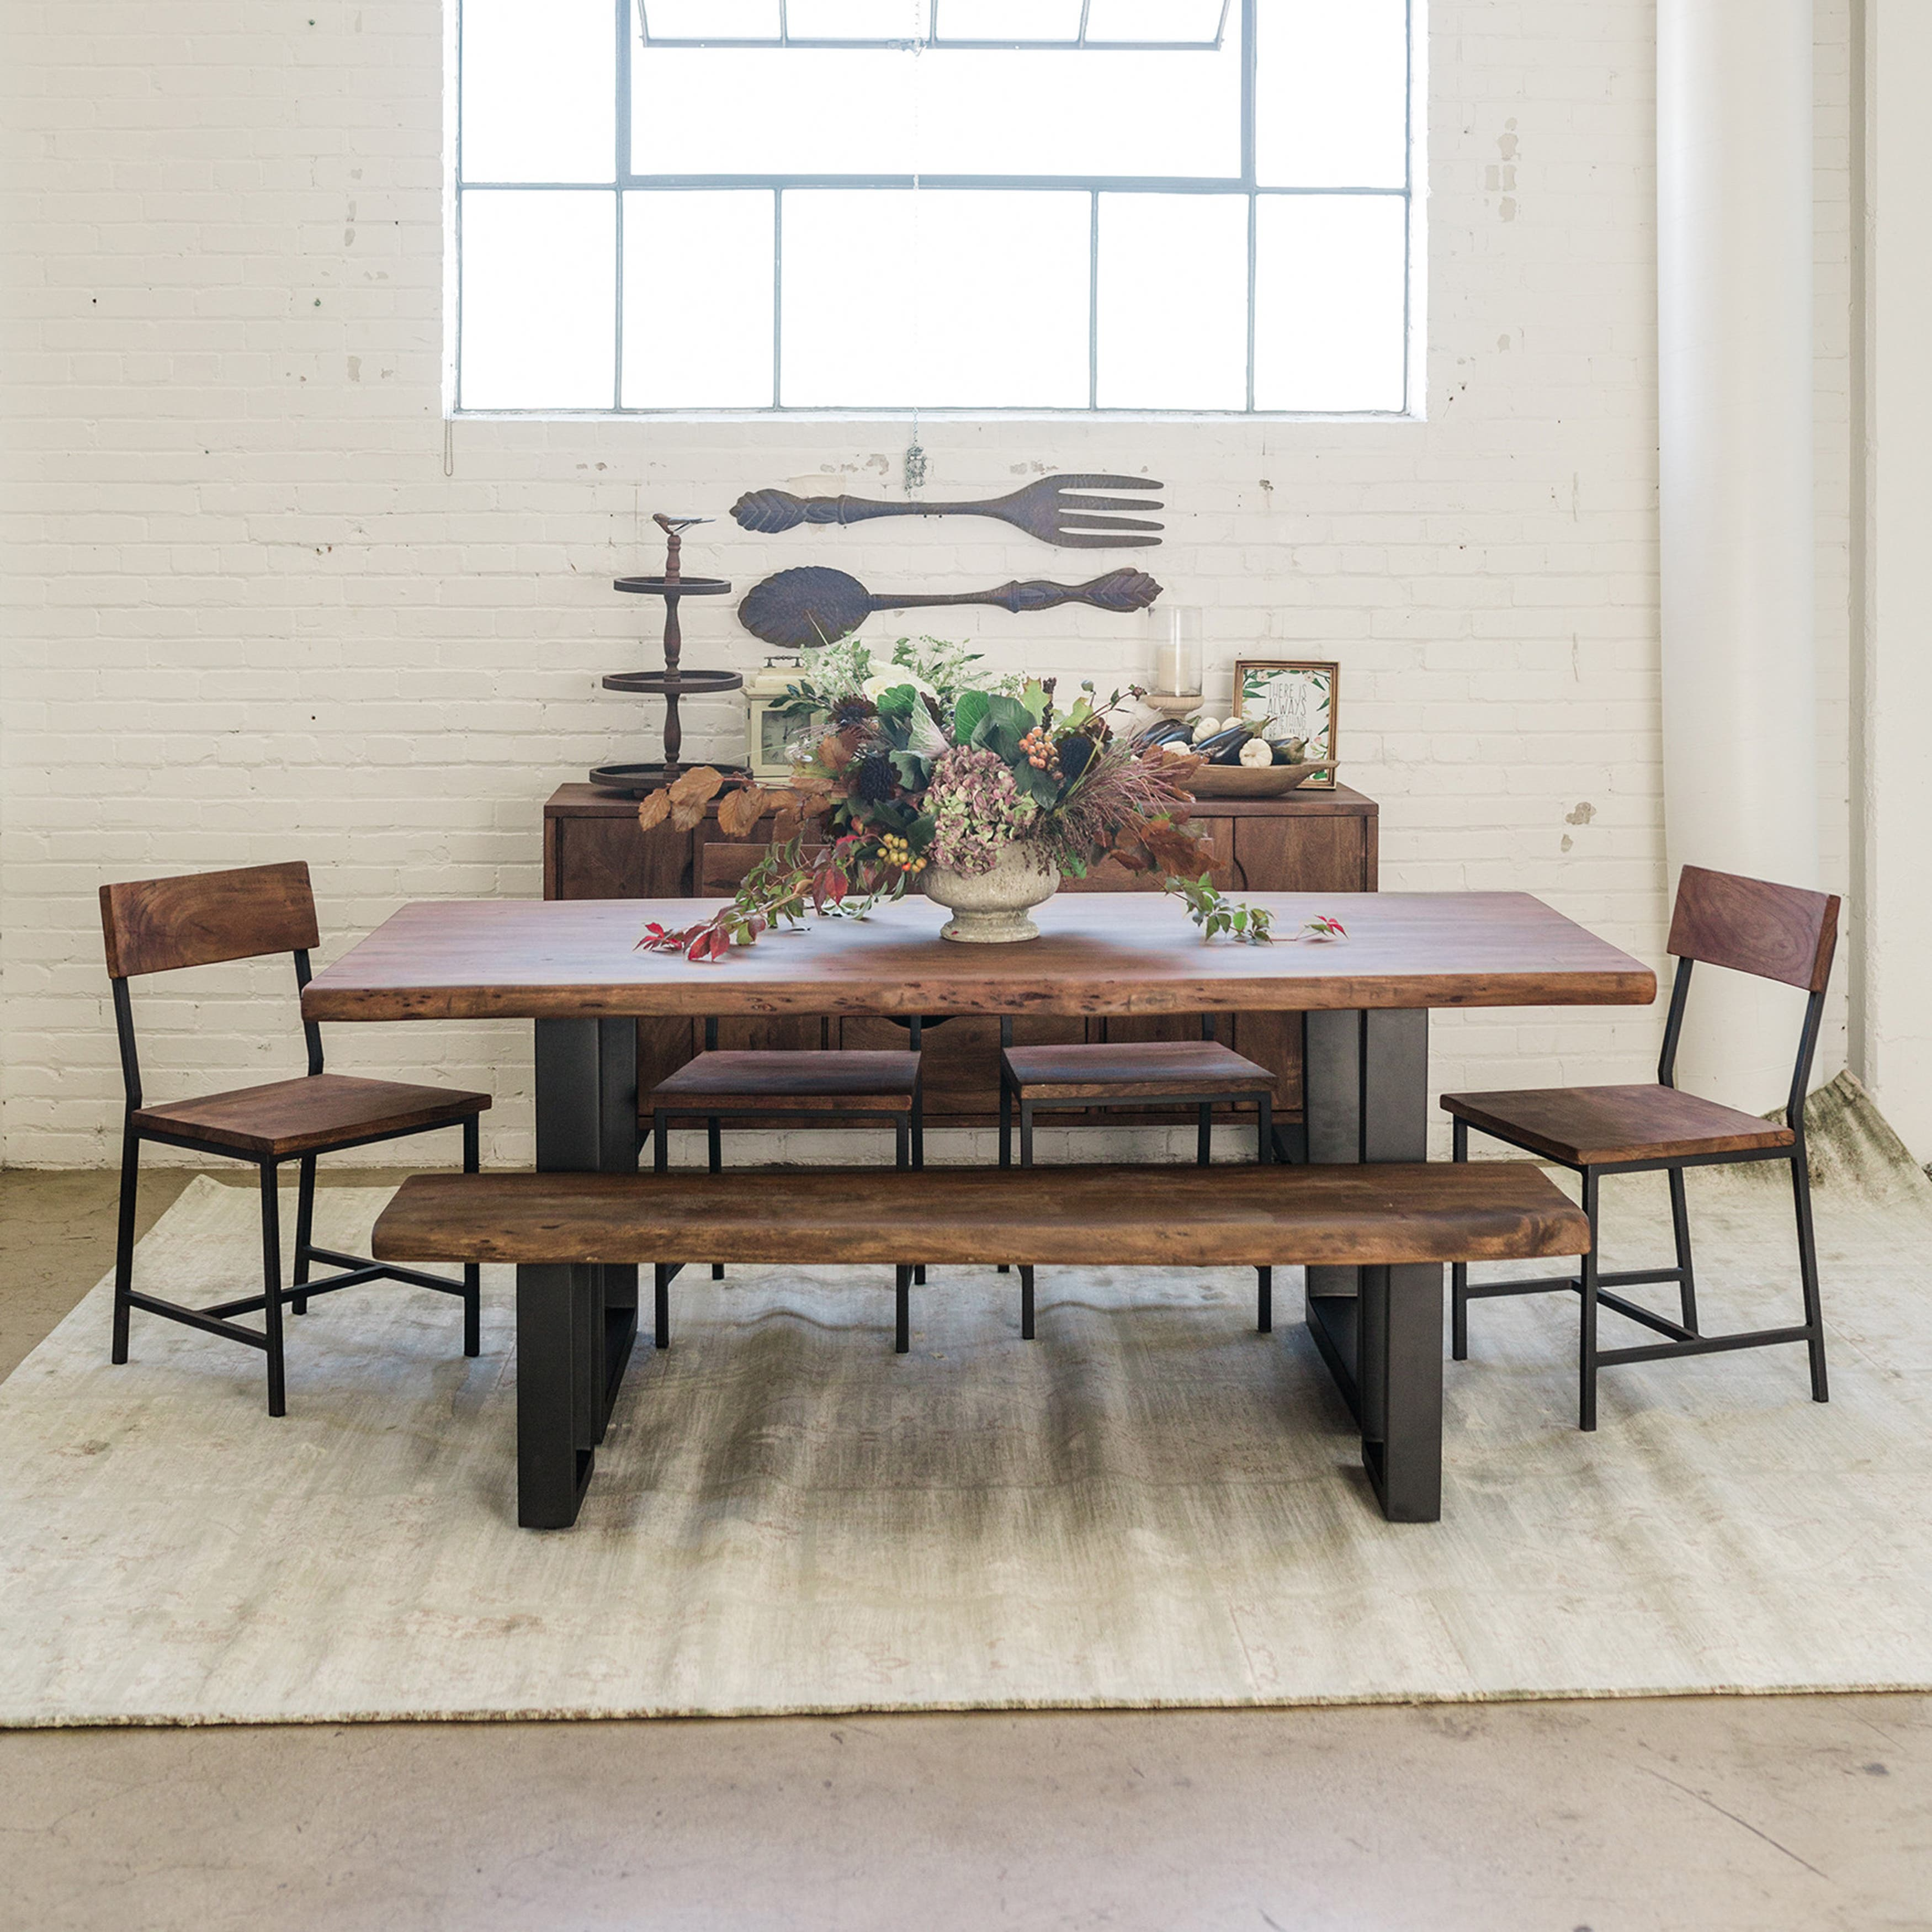 Dining Table Set Deals: Buy Kitchen & Dining Room Tables Online At Overstock